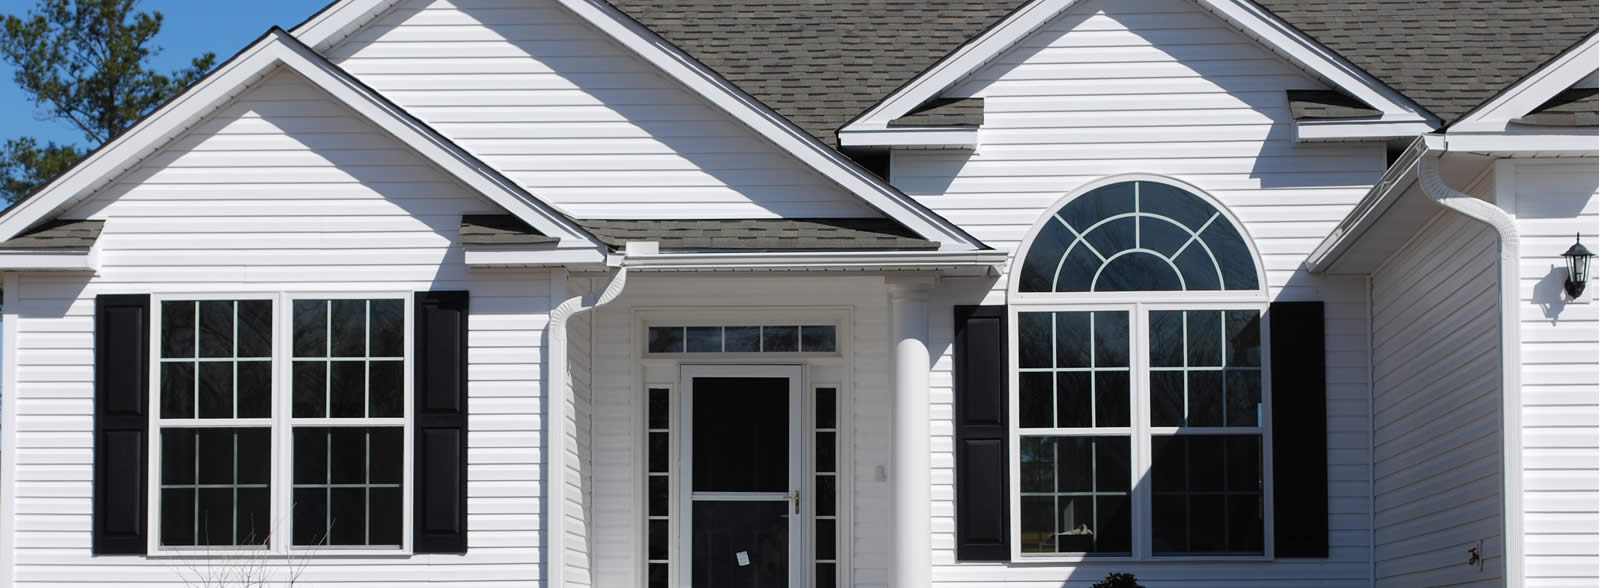 window cleaning fort collins colorado superior exterior home improvement services from vinyl siding in fort collins window cleaning collins co contractors